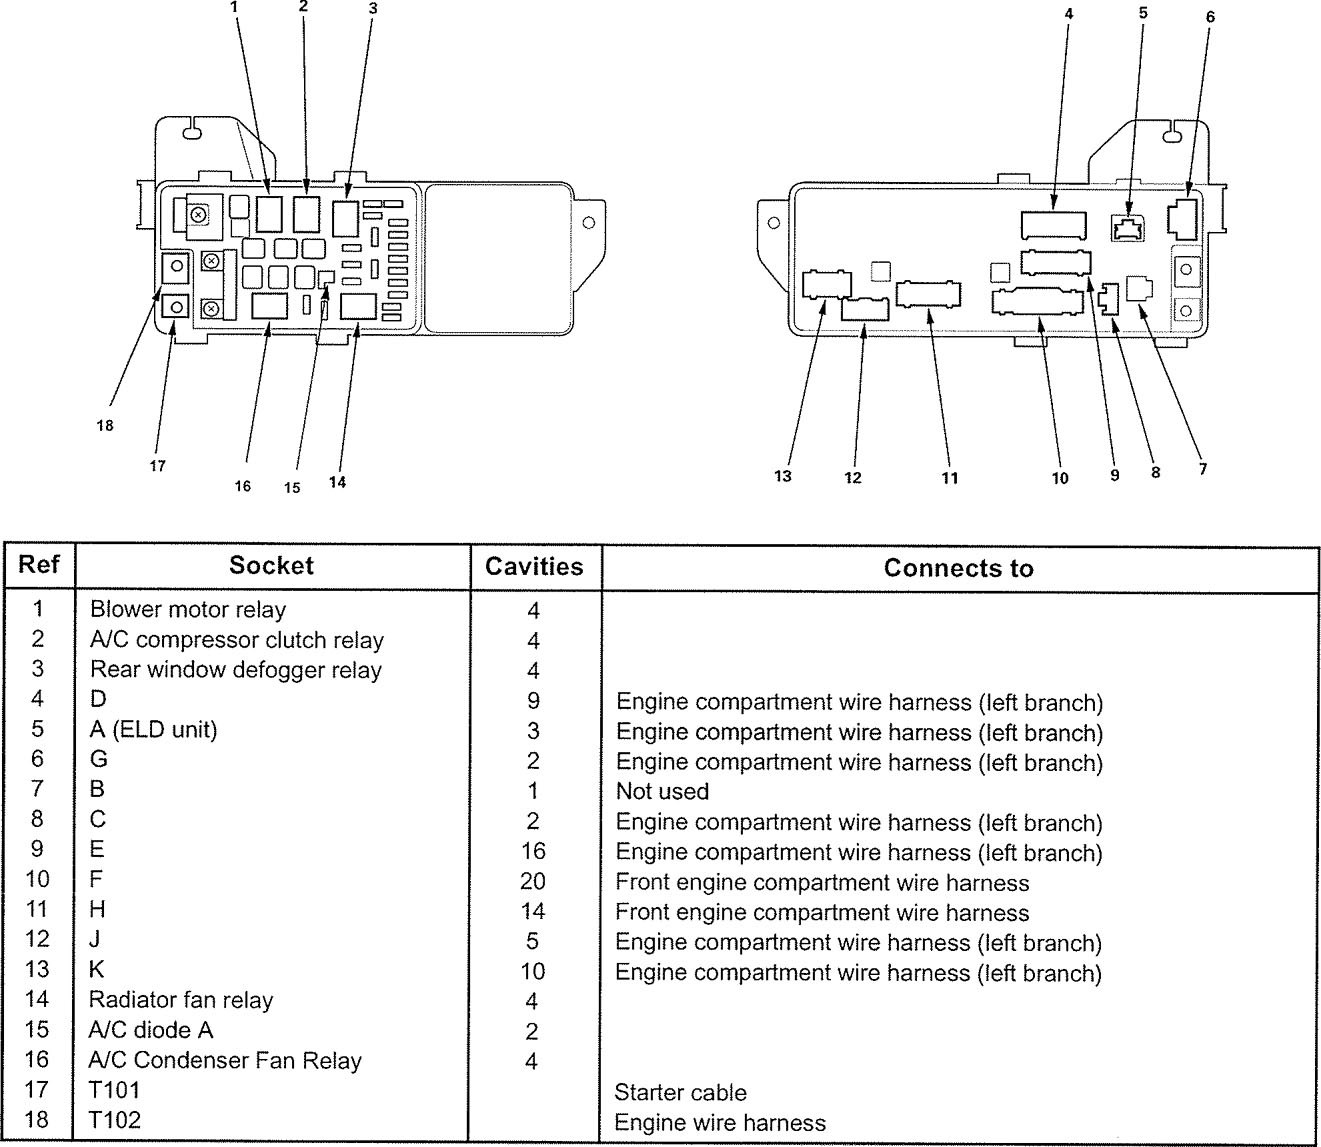 2006 Acura Rsx Fuse Box Blower Wiring Diagram Diagrams Motor Honda Element Tl